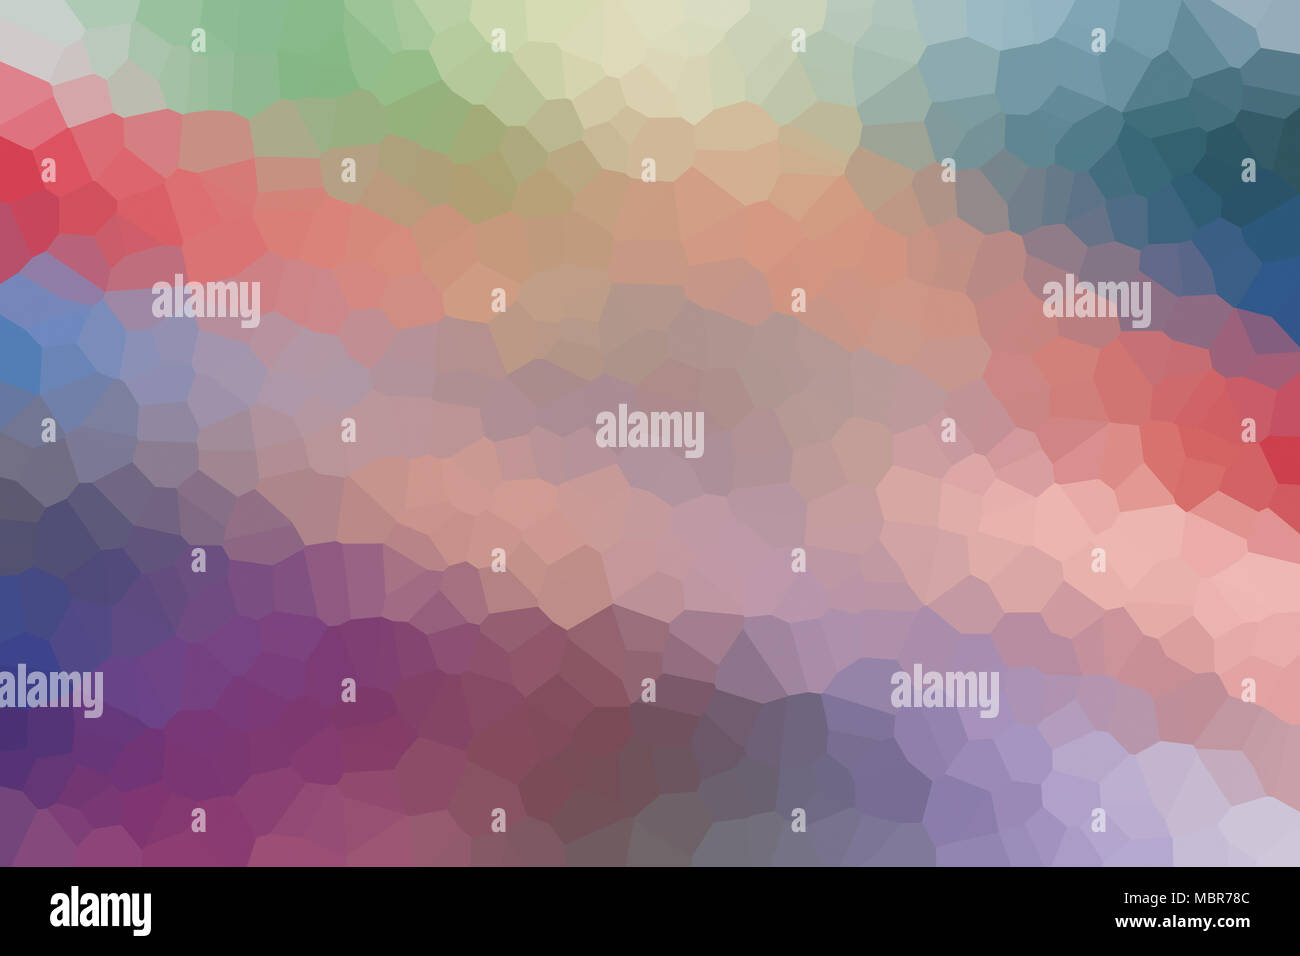 Multicolored Abstract Polygonal Pattern Vague Low Poly Background With Gradient